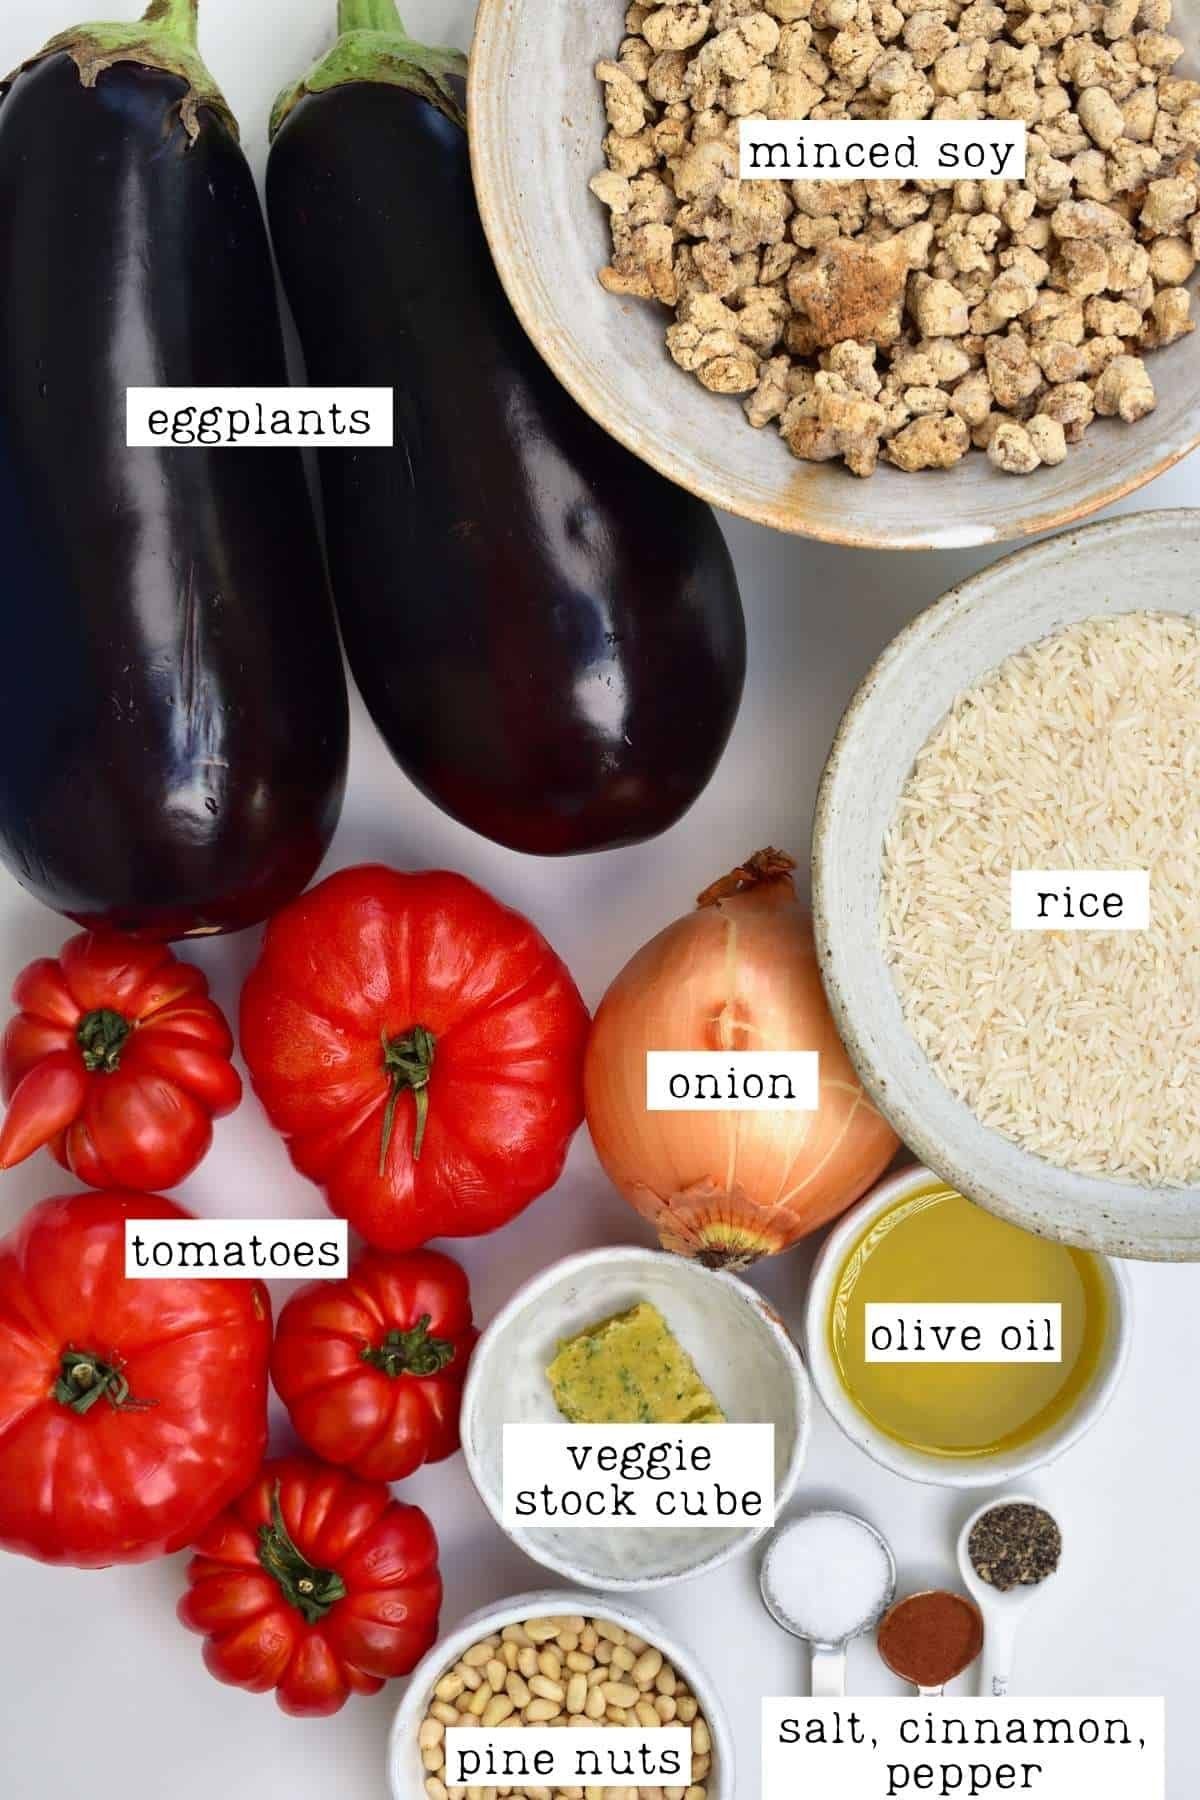 Ingredients for maqluba